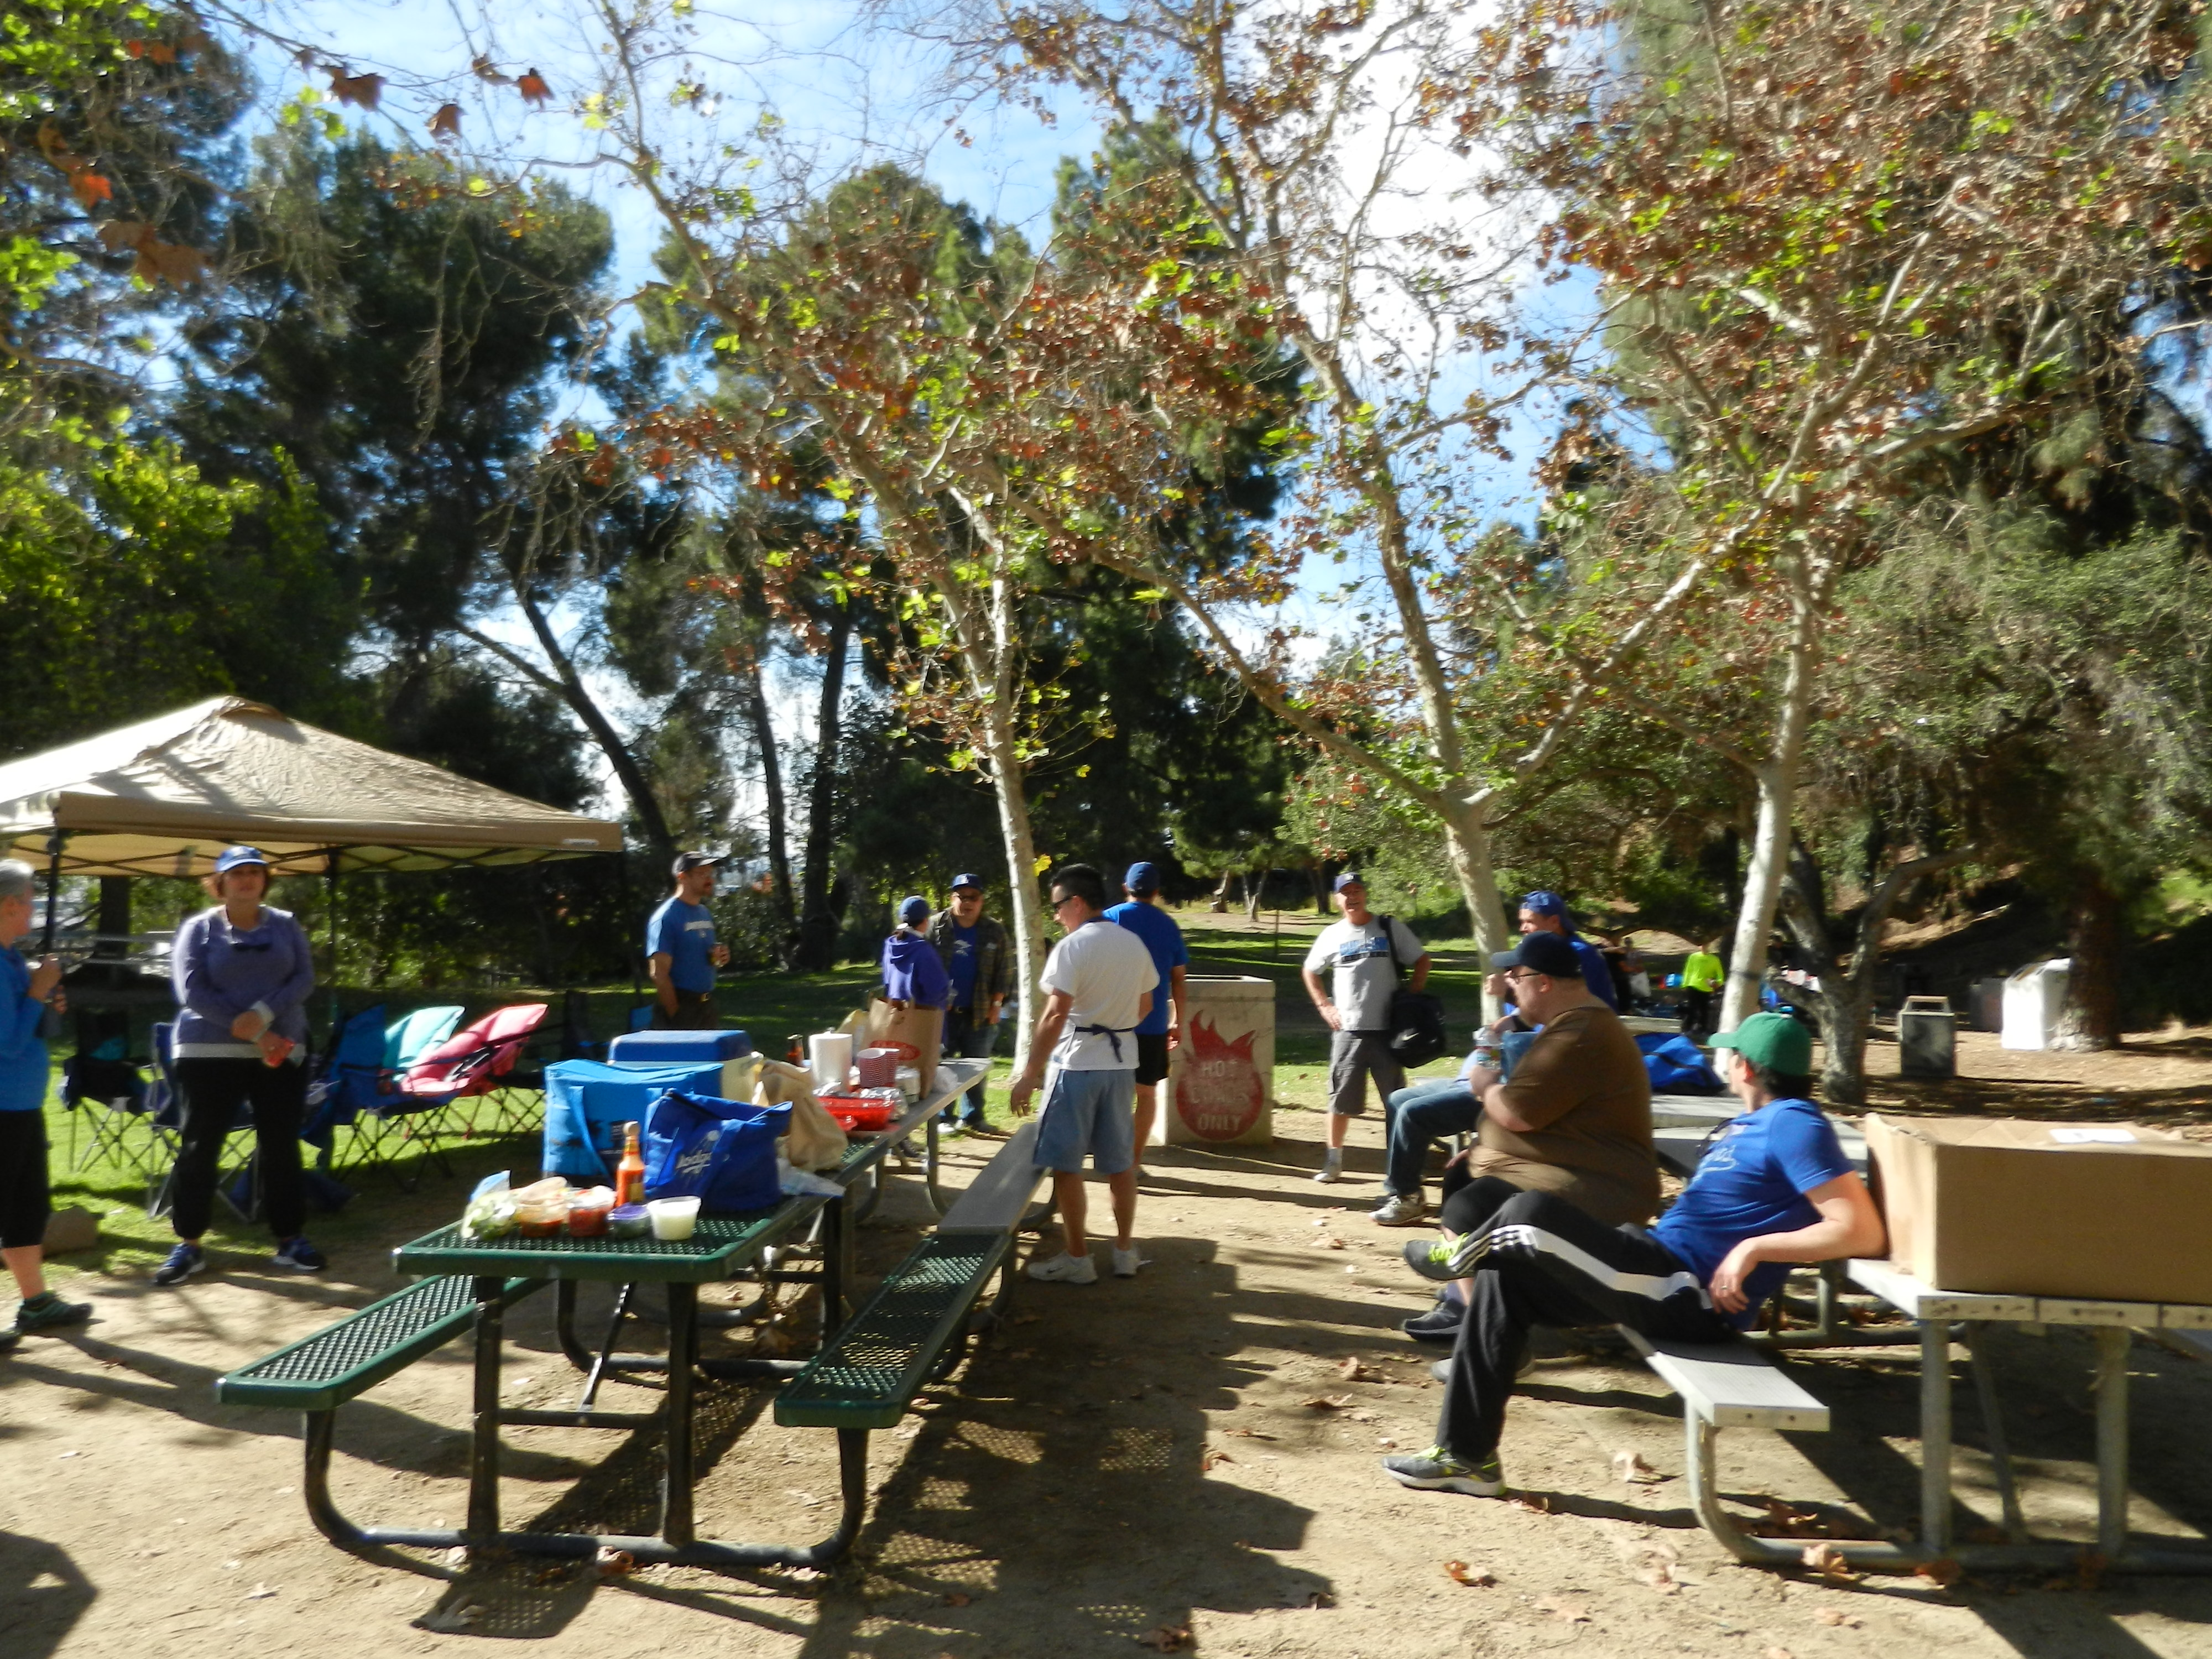 TBLA picnics always rock with food and good times!